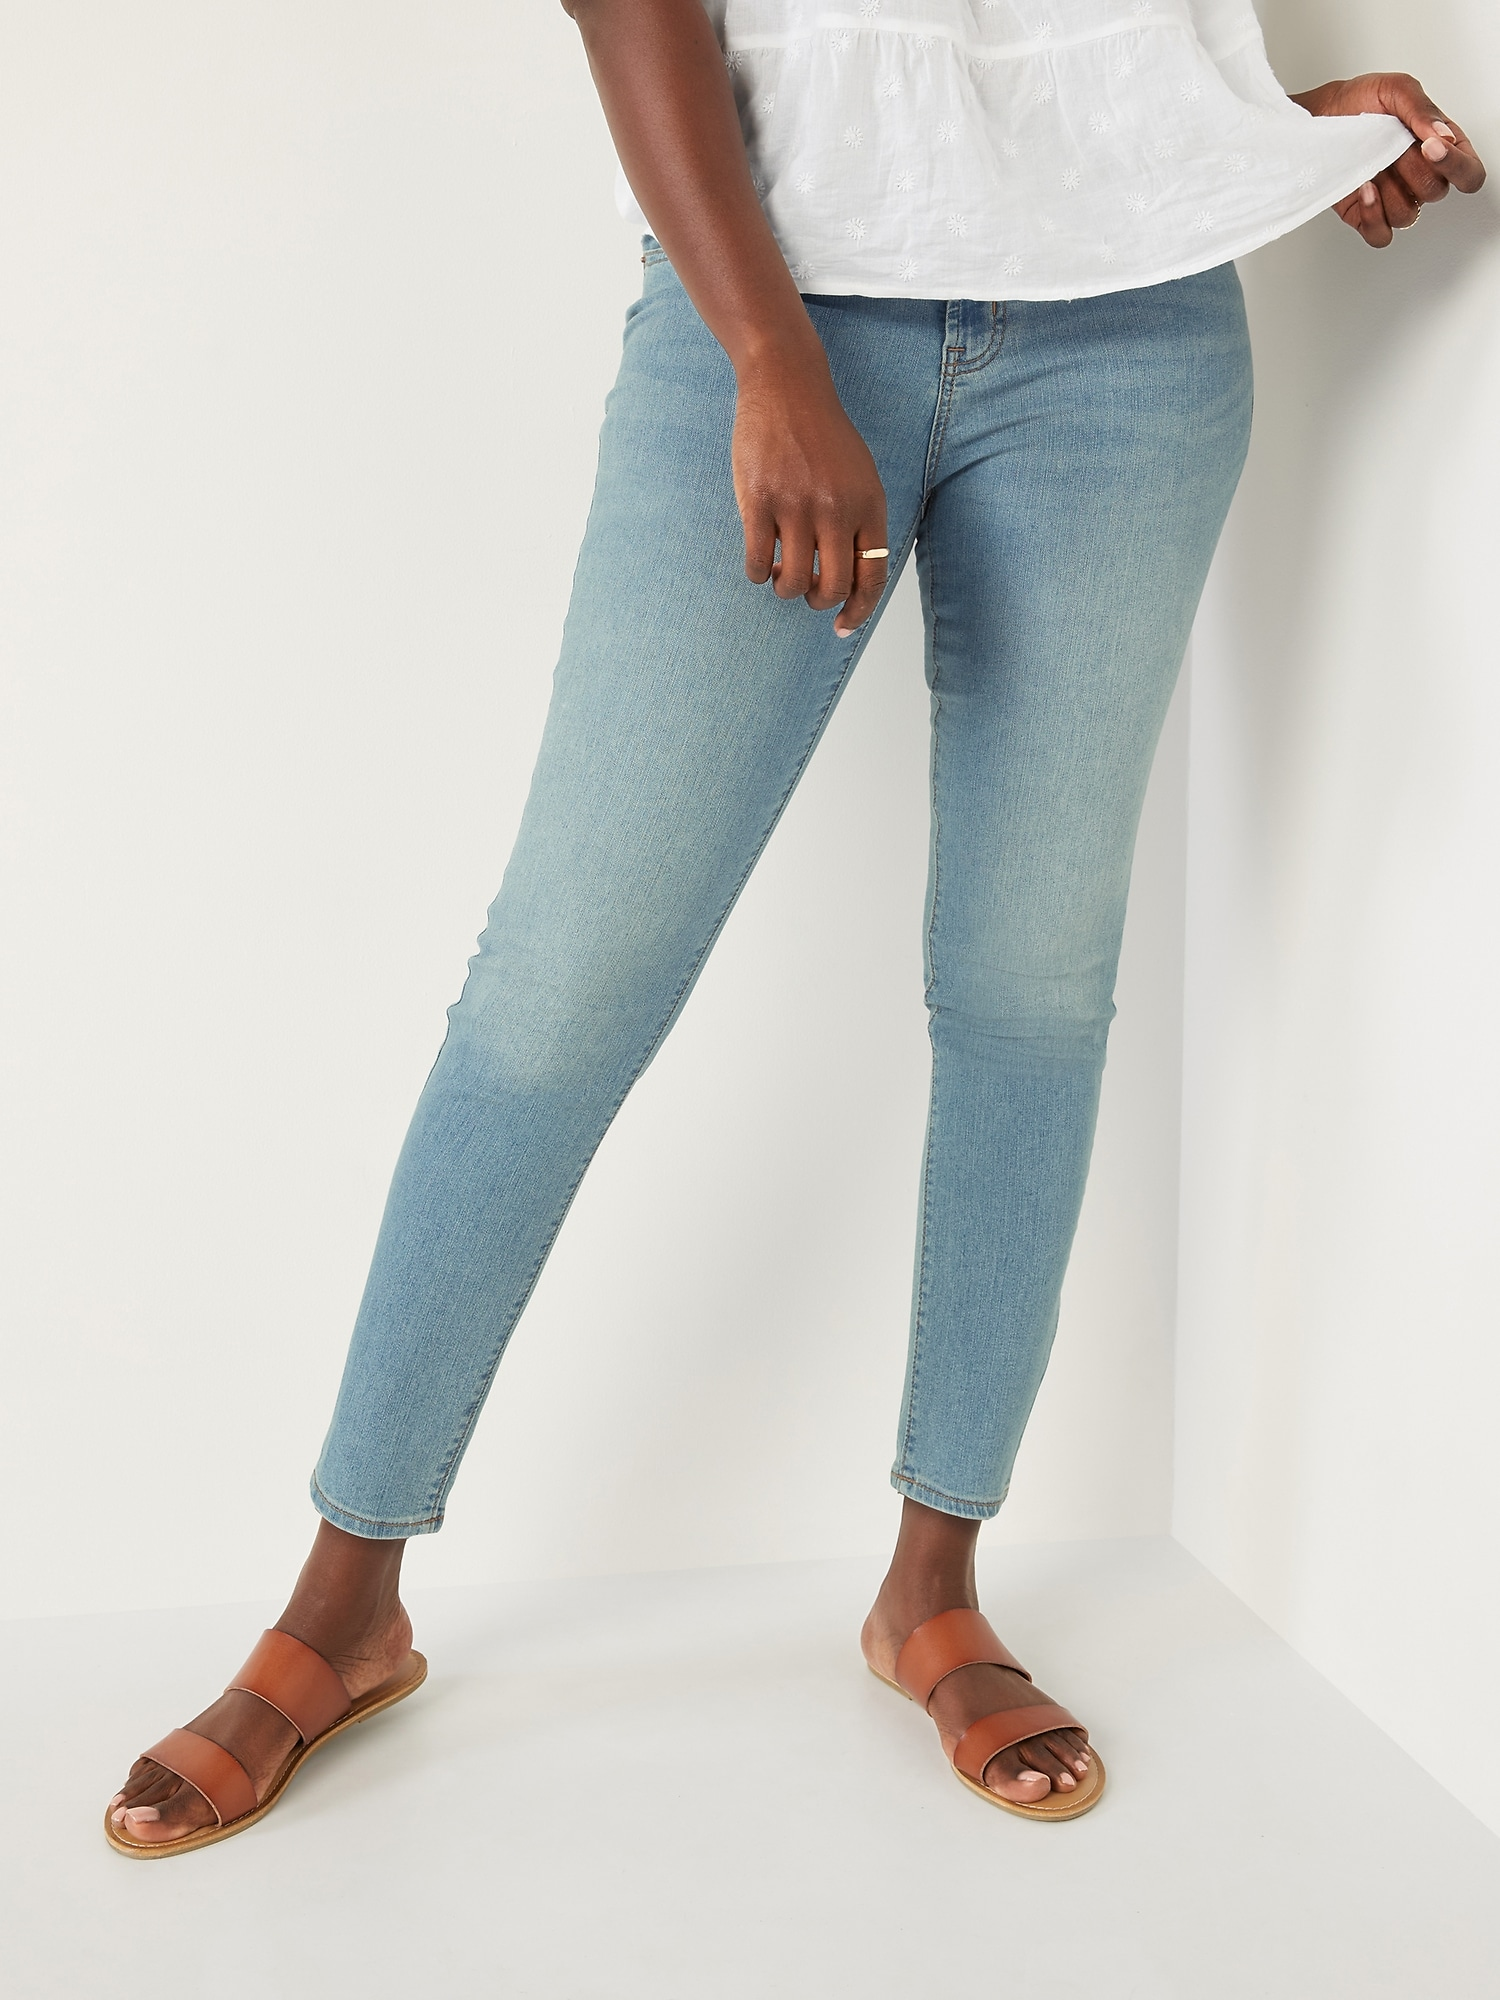 Femme Jeggings Diverses Tailles Bnwt